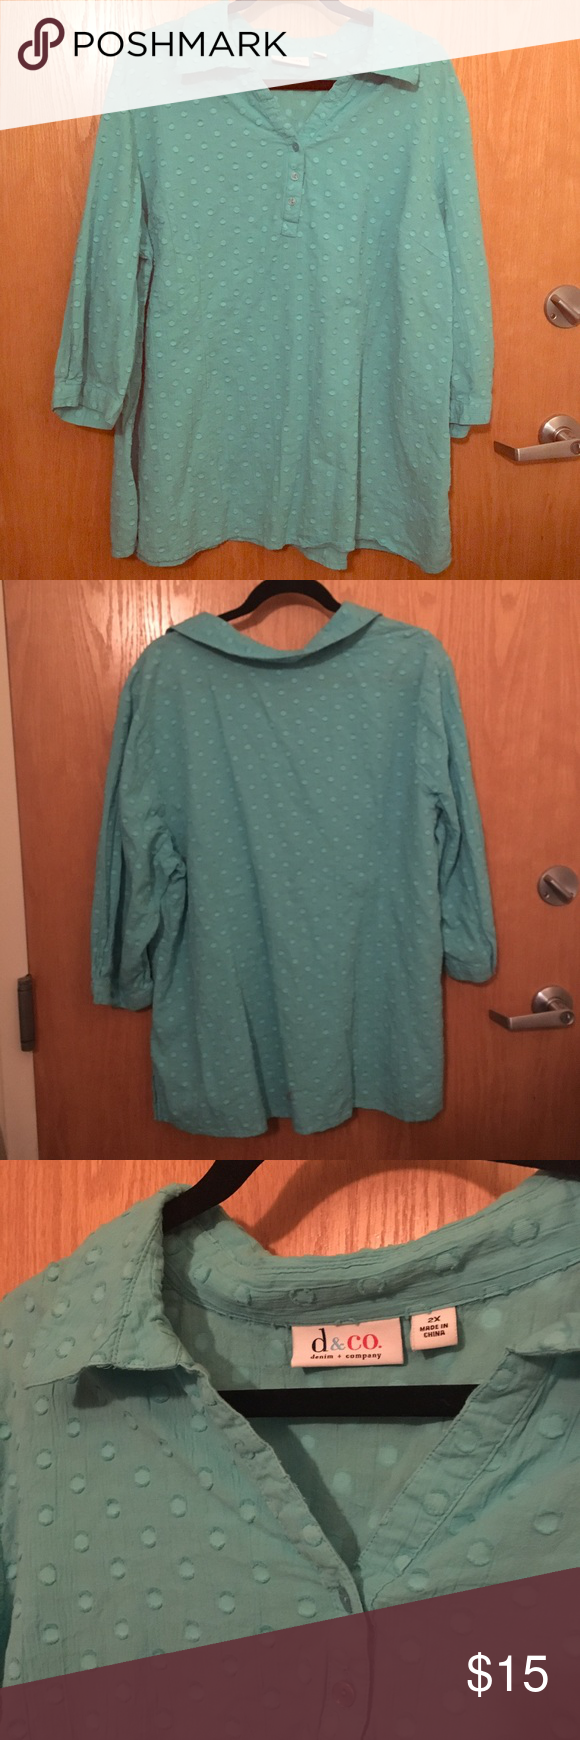 D&Co. 3/4 Sleeve Sky Blue Henley Top This is a cute cotton top with shorter sleeves. Great used condition. Let me know if you have questions. I respond to all offers. Denim & Co. Tops Tees - Long Sleeve